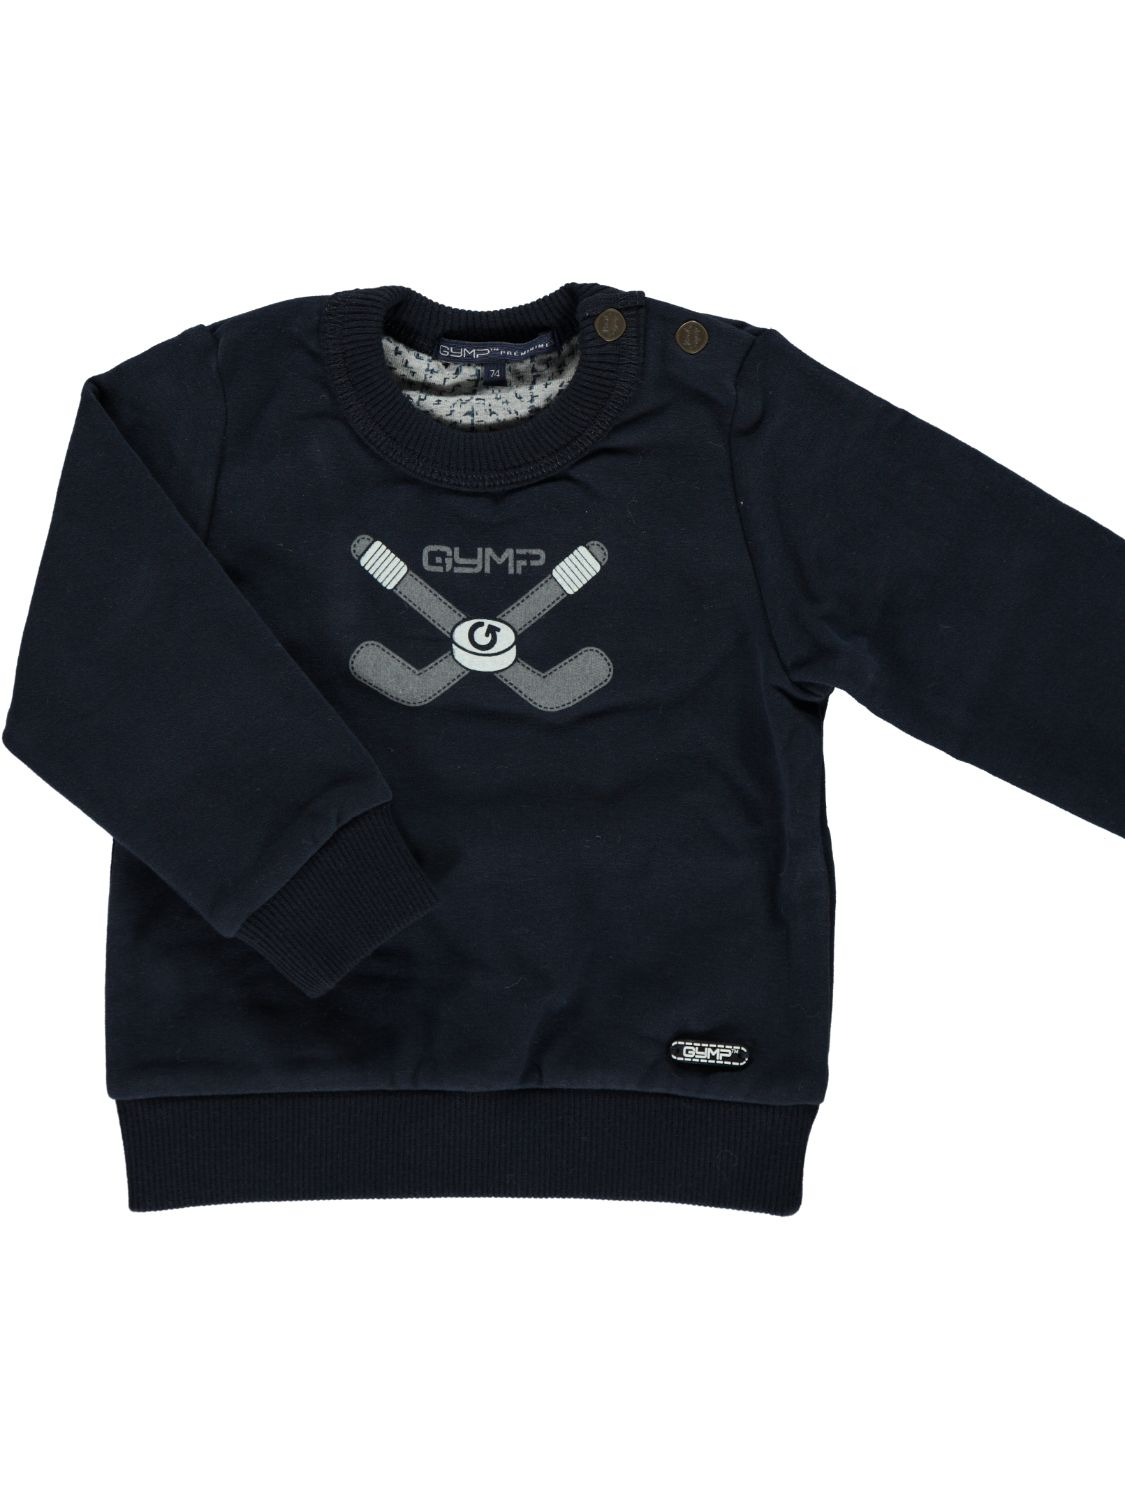 Gymp Baby Sweater